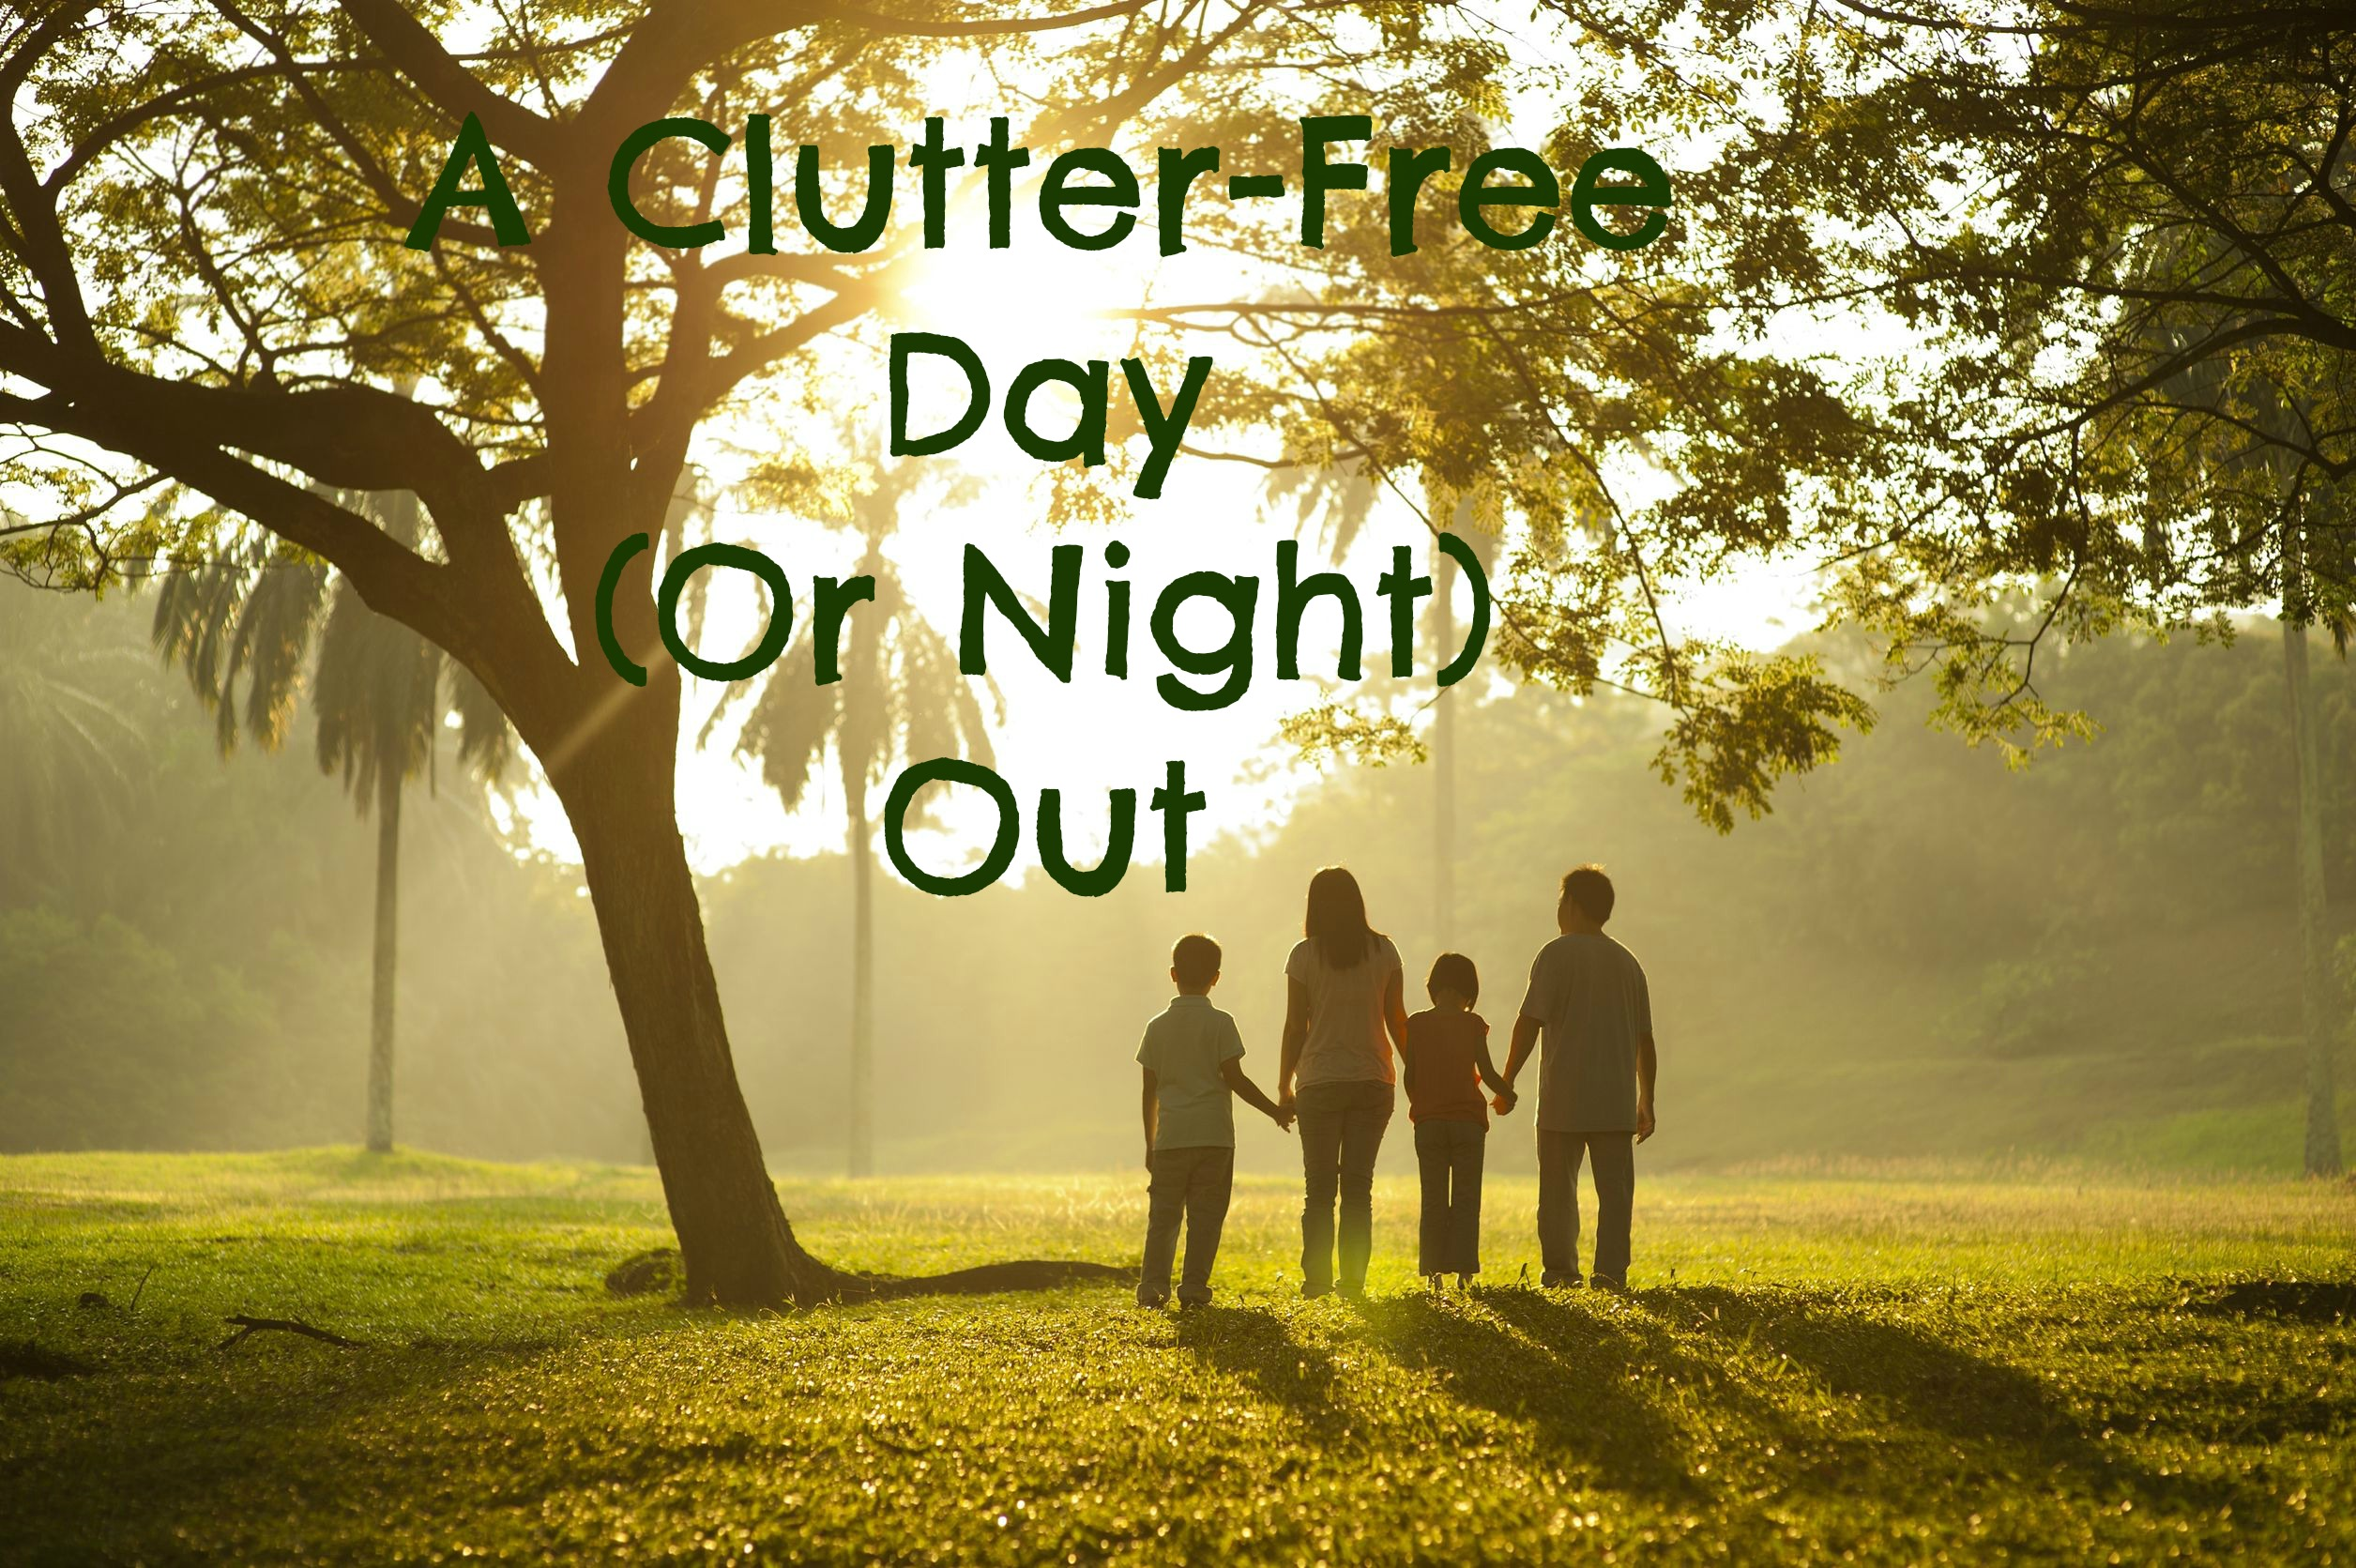 A Clutter Free Day (Or Night) Out